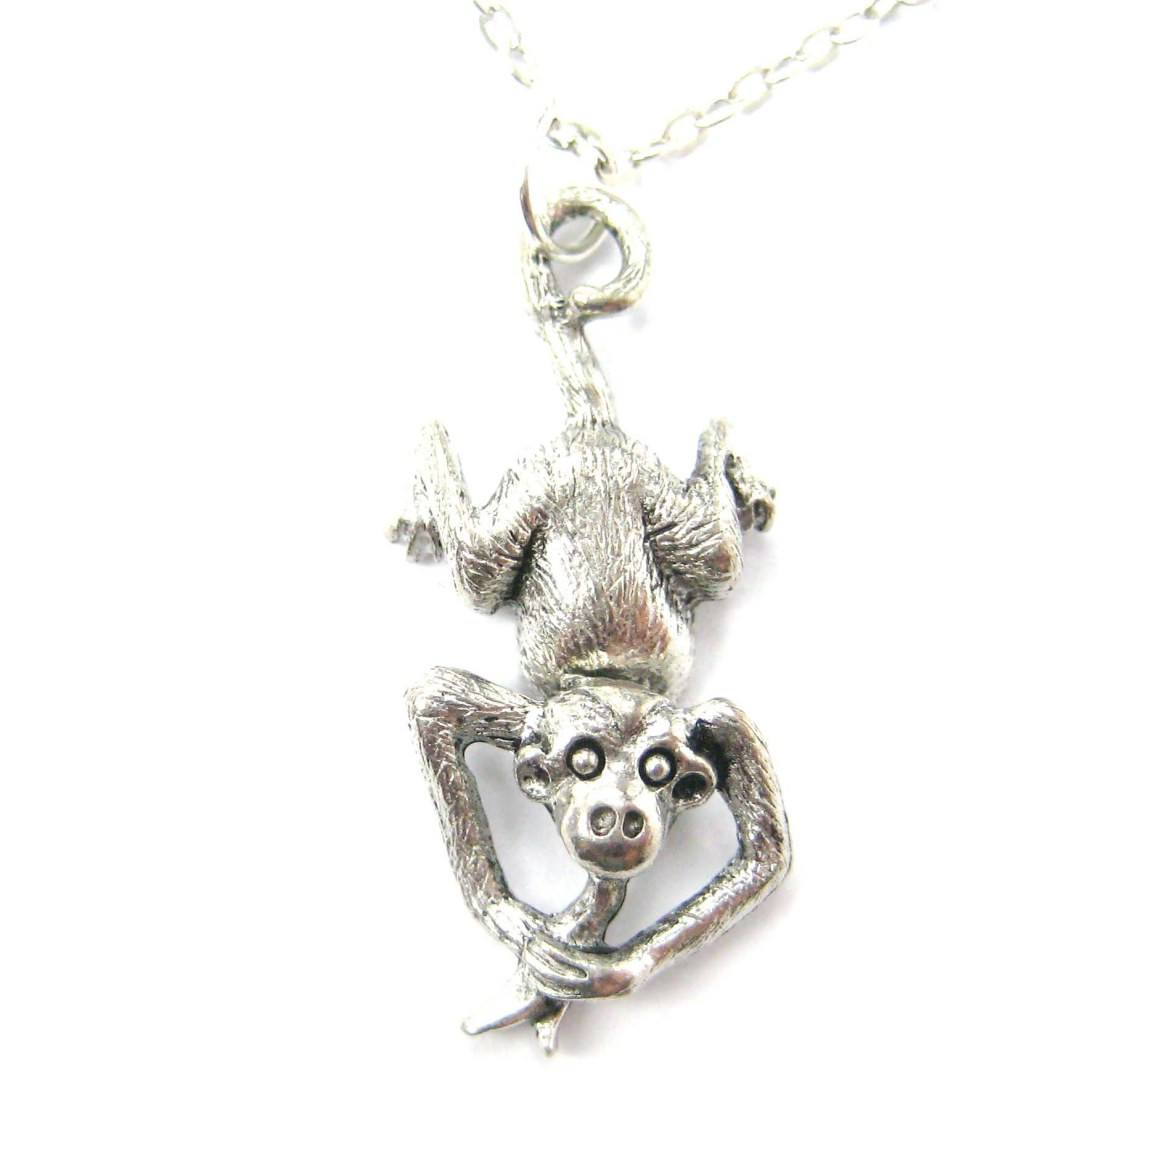 Monkey With A Banana Shaped Animal Charm Necklace | MADE IN USA